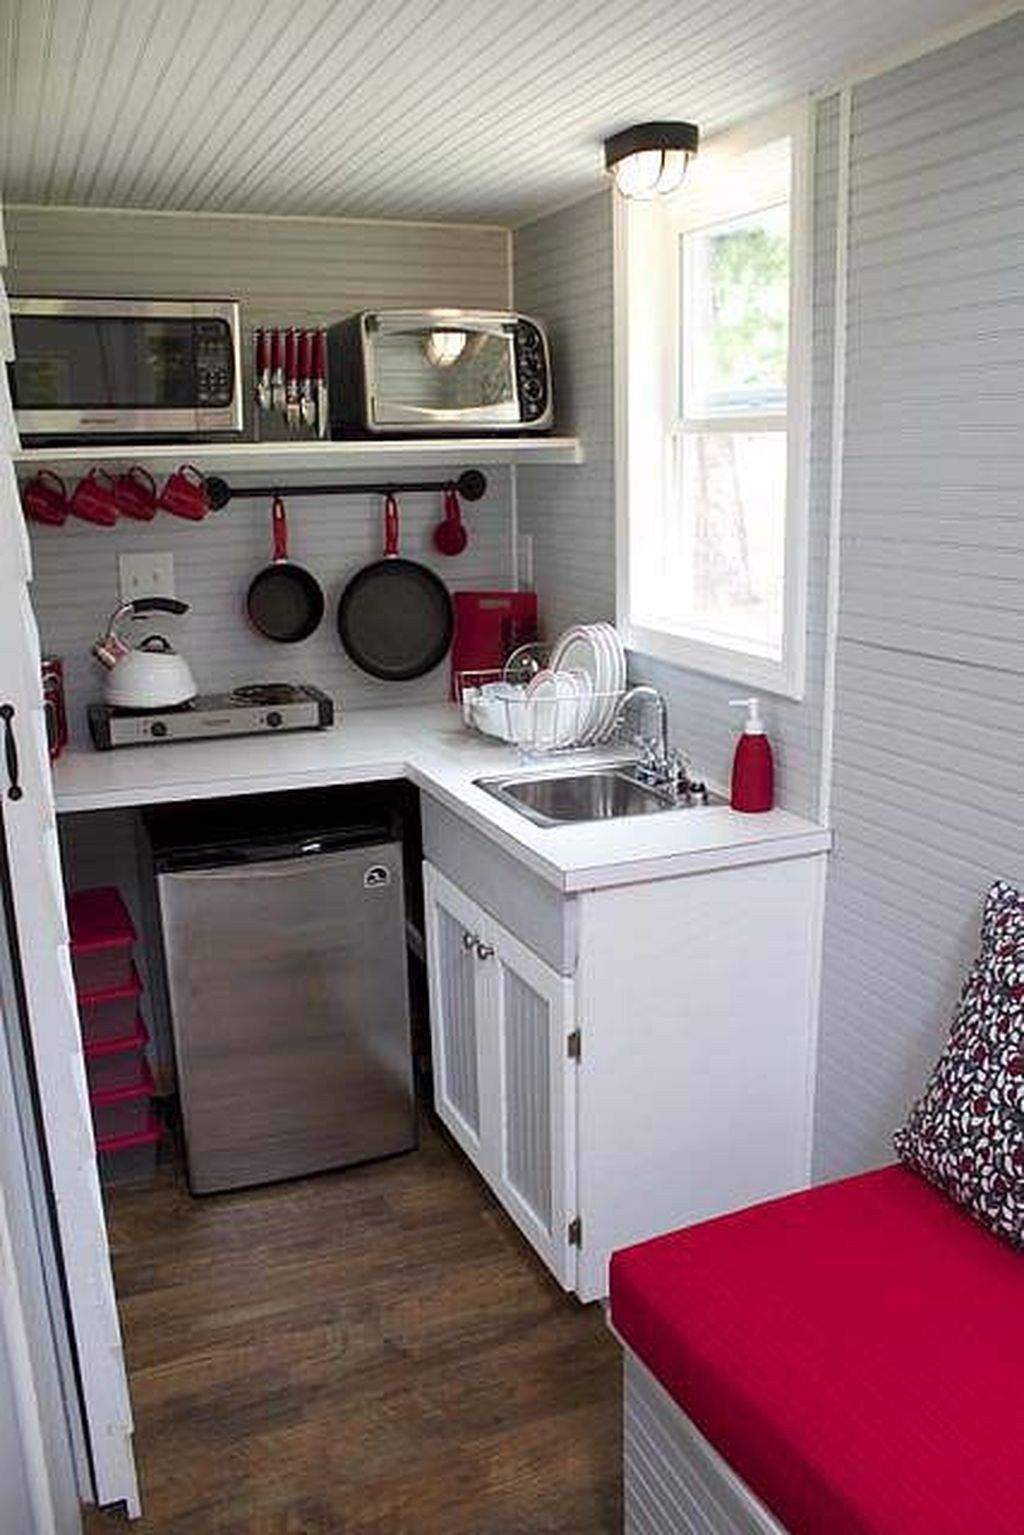 20 Gorgoeus Tiny House Small Kitchen Ideas Tiny House Kitchen